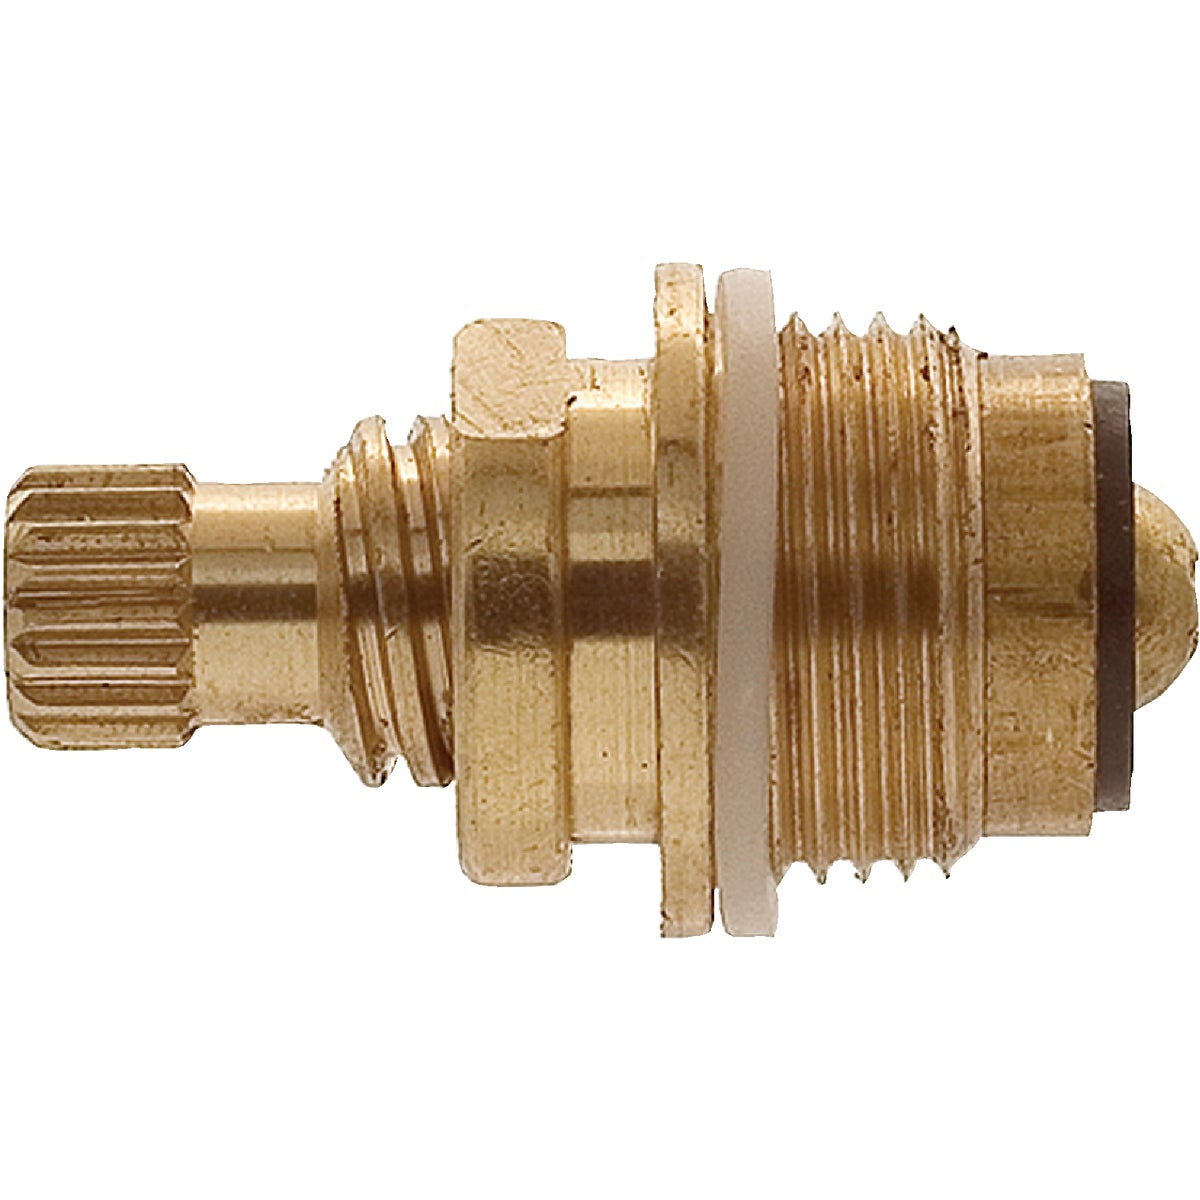 1E-2H UNION BRASS STEM - 15333E by Danco Perfect Match